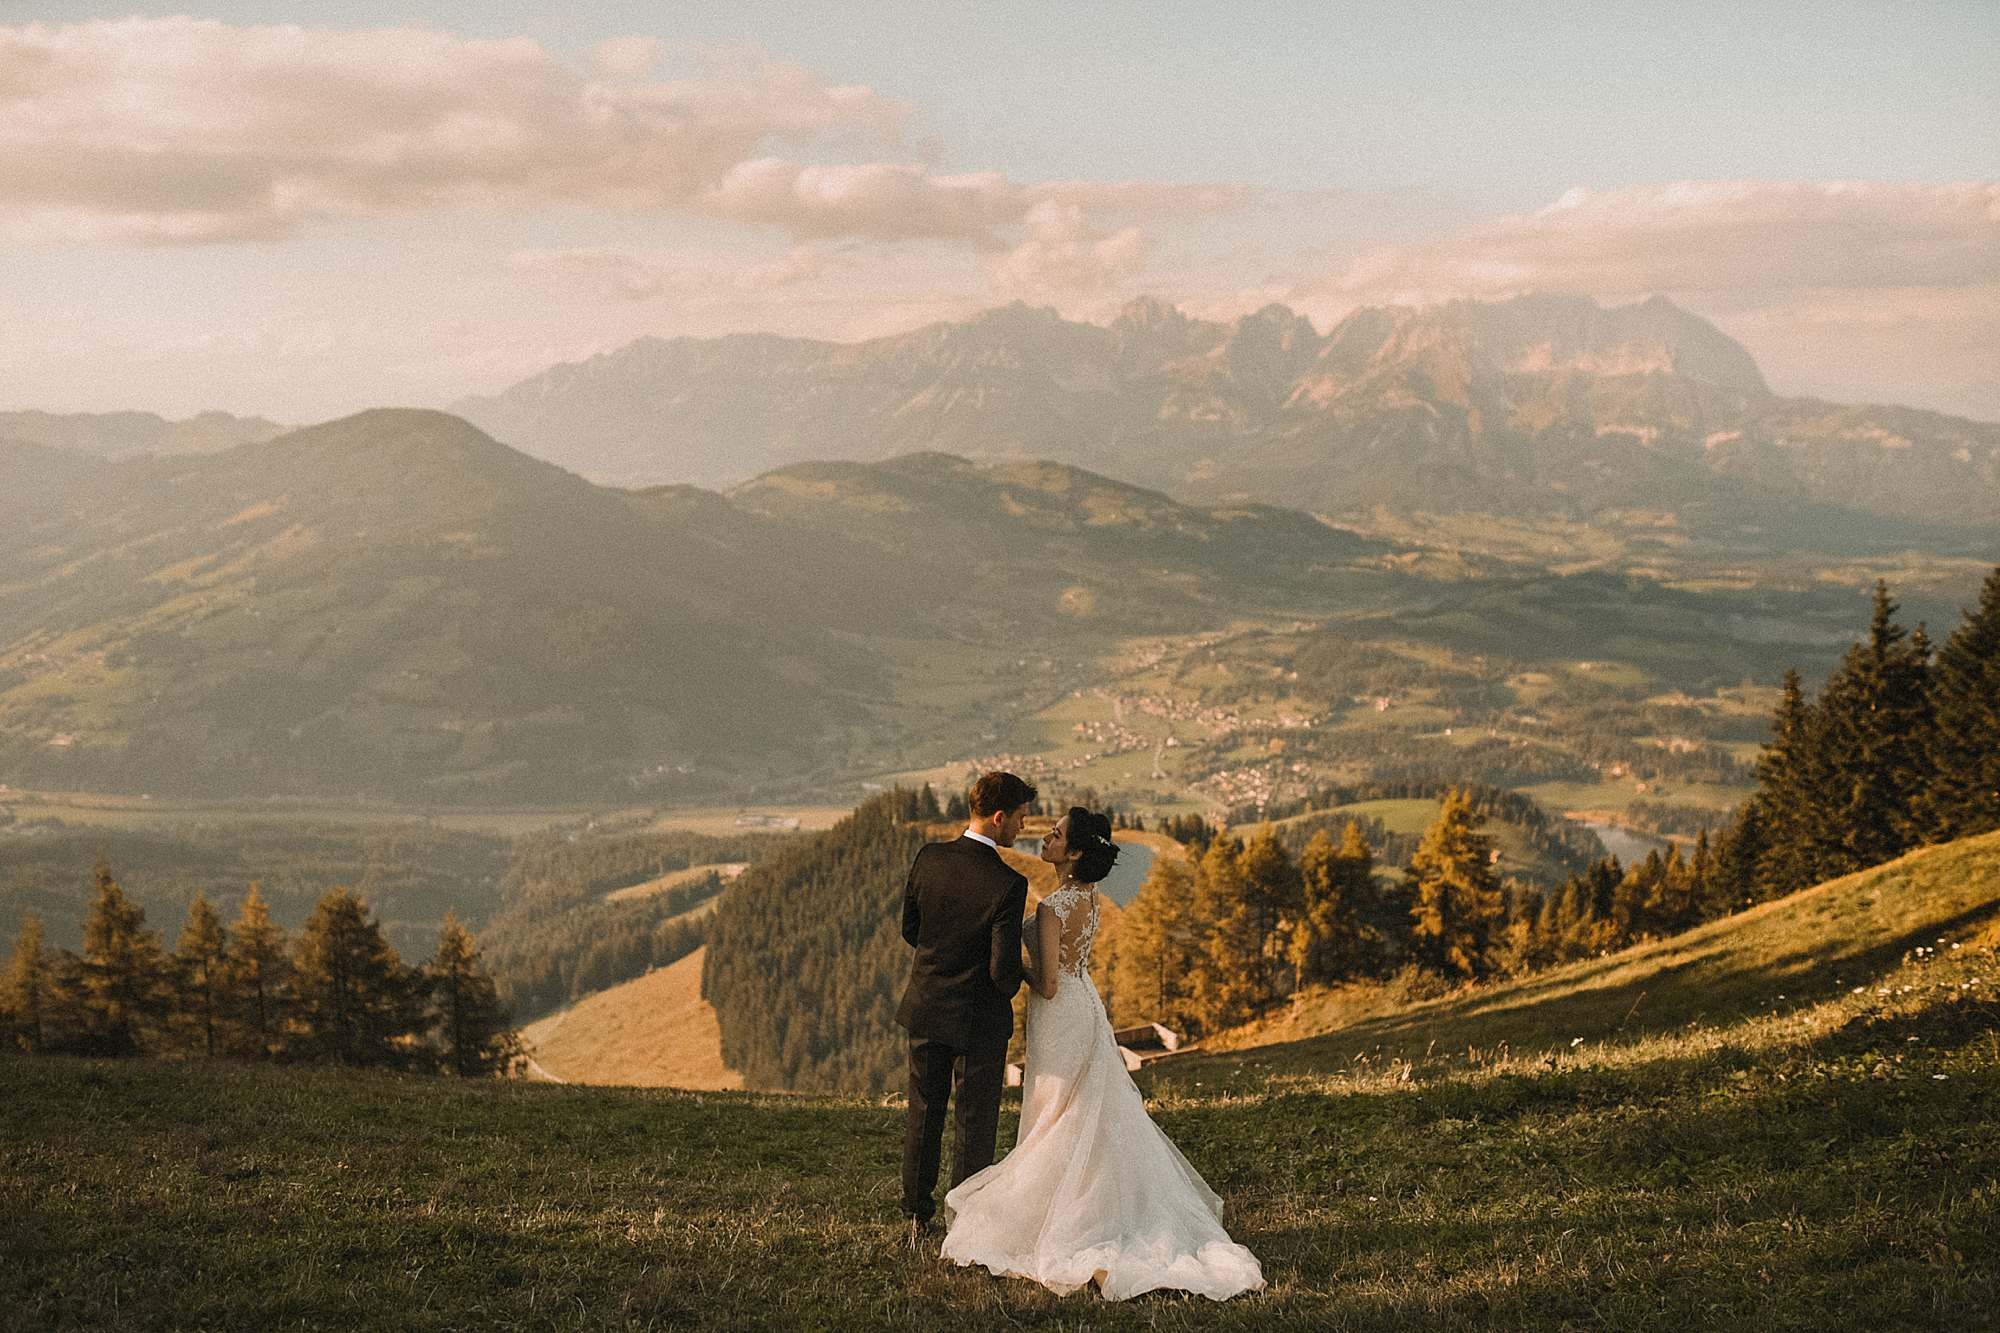 kitzbuehel wedding photographer_0069.jpg